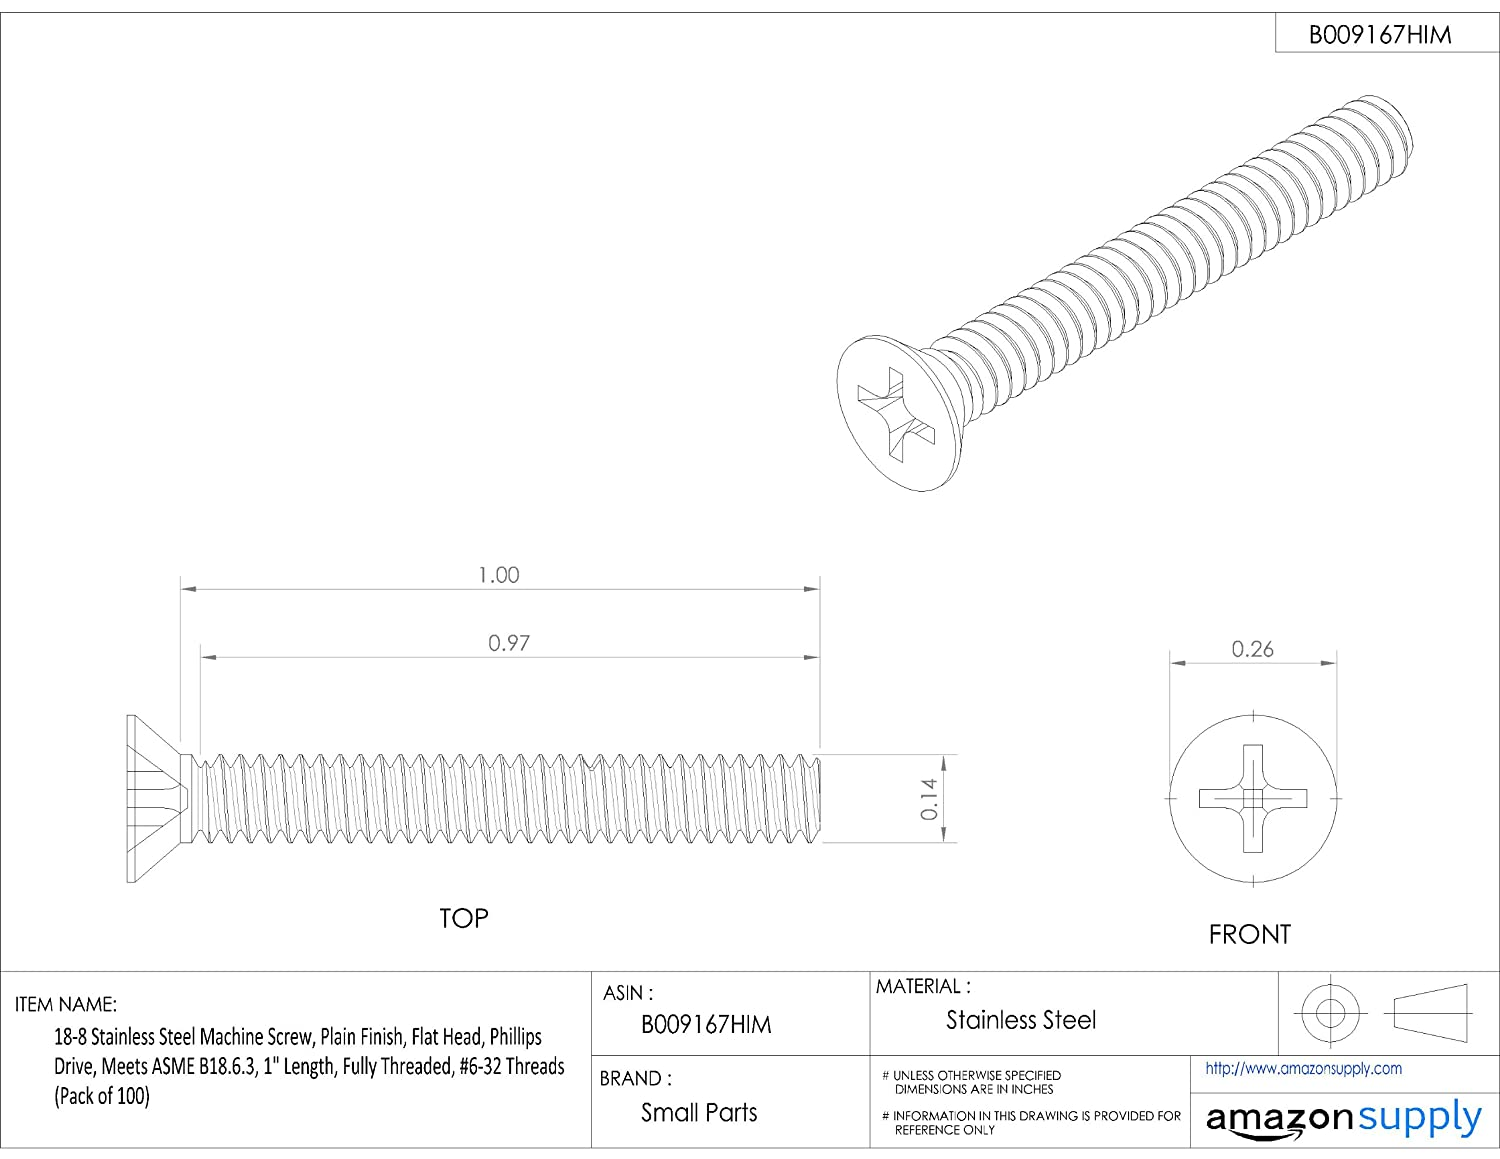 1 Length 18-8 Stainless Steel Machine Screw Flat Head 1 Length Small Parts Phillips Drive Pack of 100 Meets ASME B18.6.3 #6-32 UNC Threads Plain Finish Fully Threaded